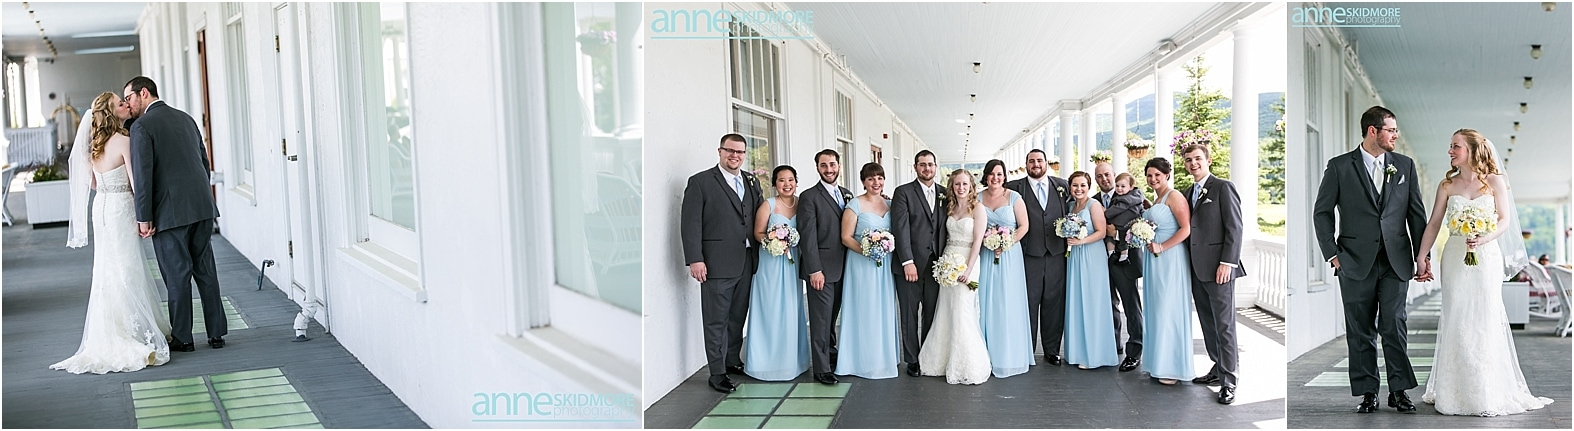 Mount_Washington_Hotel_Wedding_0023